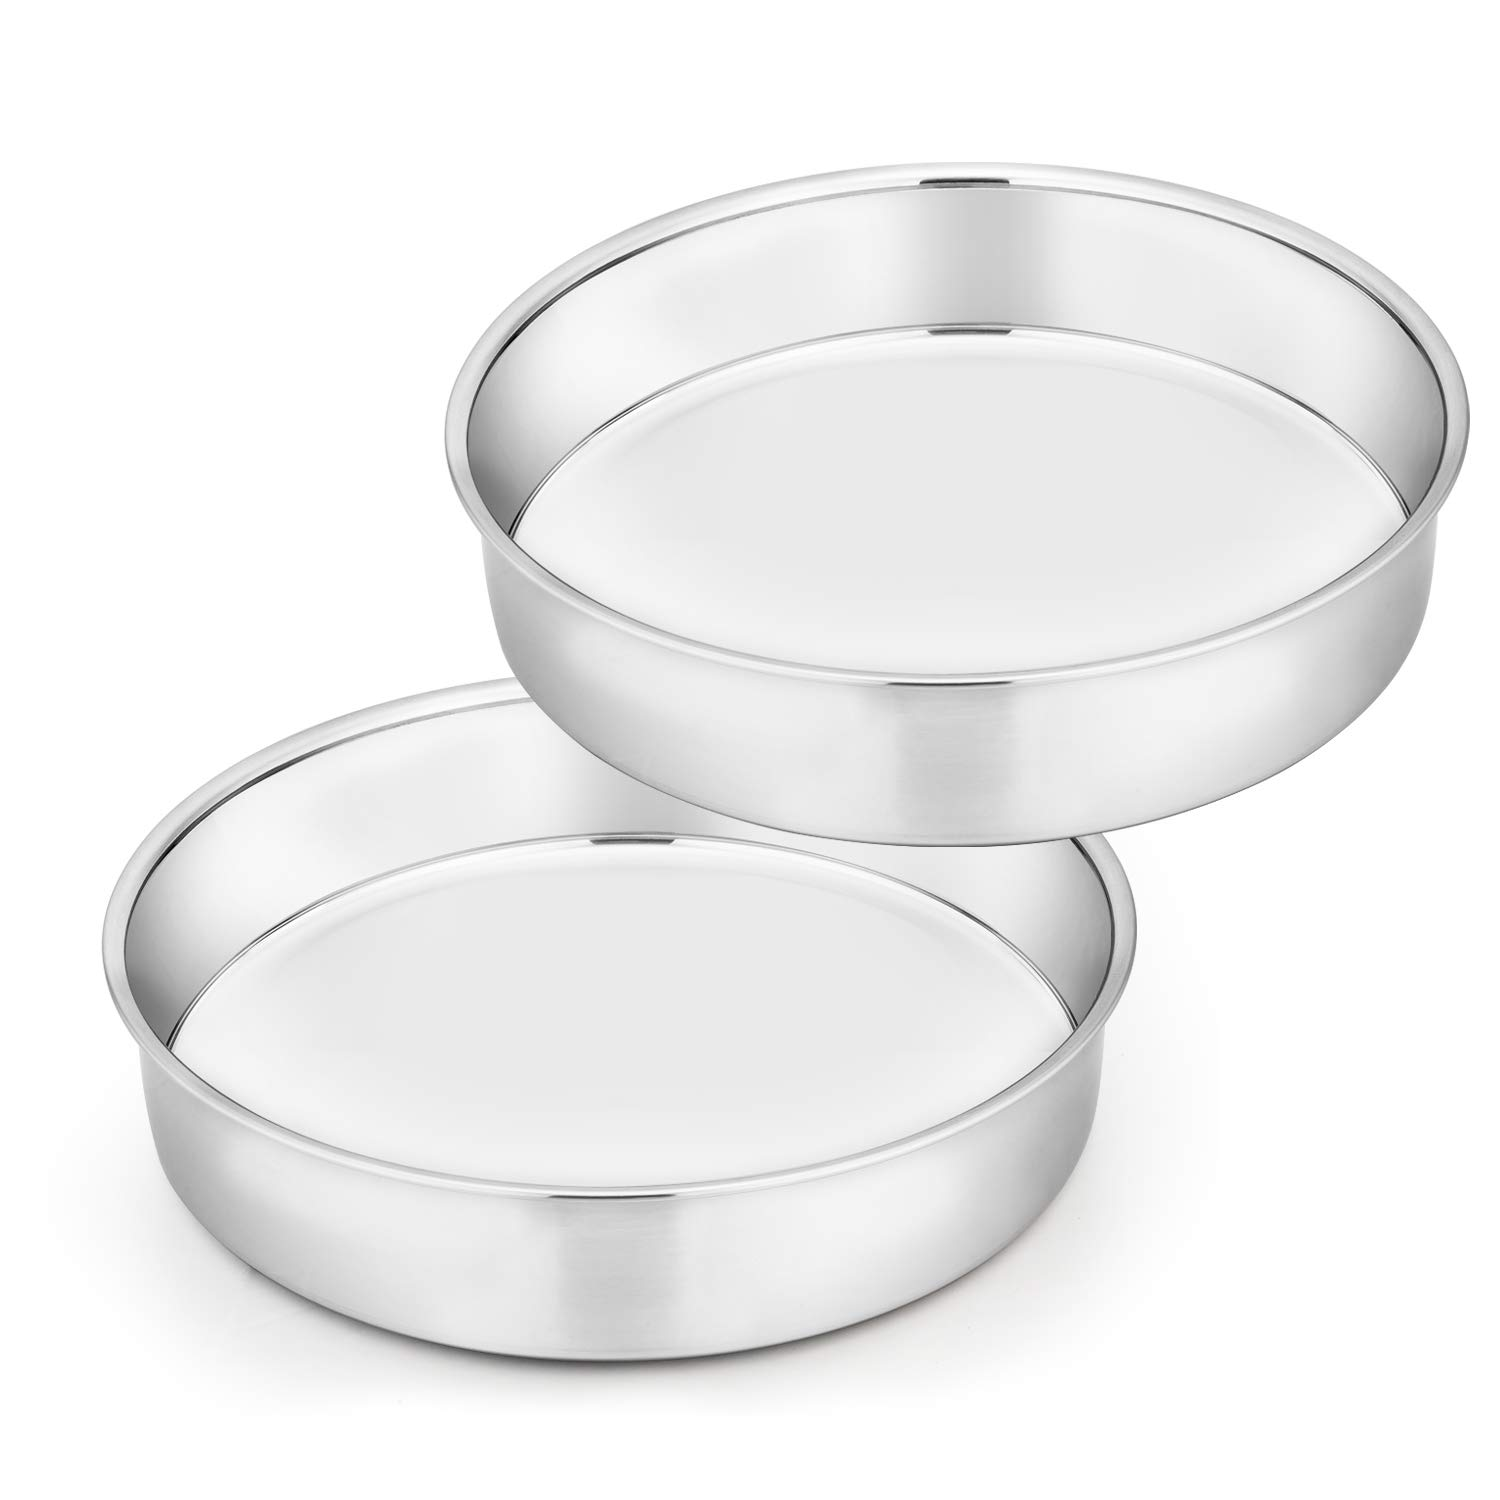 TeamFar Cake Pan Set of 2, 8 Inch Cake Pan Round Tier Cake Pan Set Stainless Steel, Healthy & Heavy Duty, Mirror Finish & Easy Clean, Dishwasher Safe by TeamFar